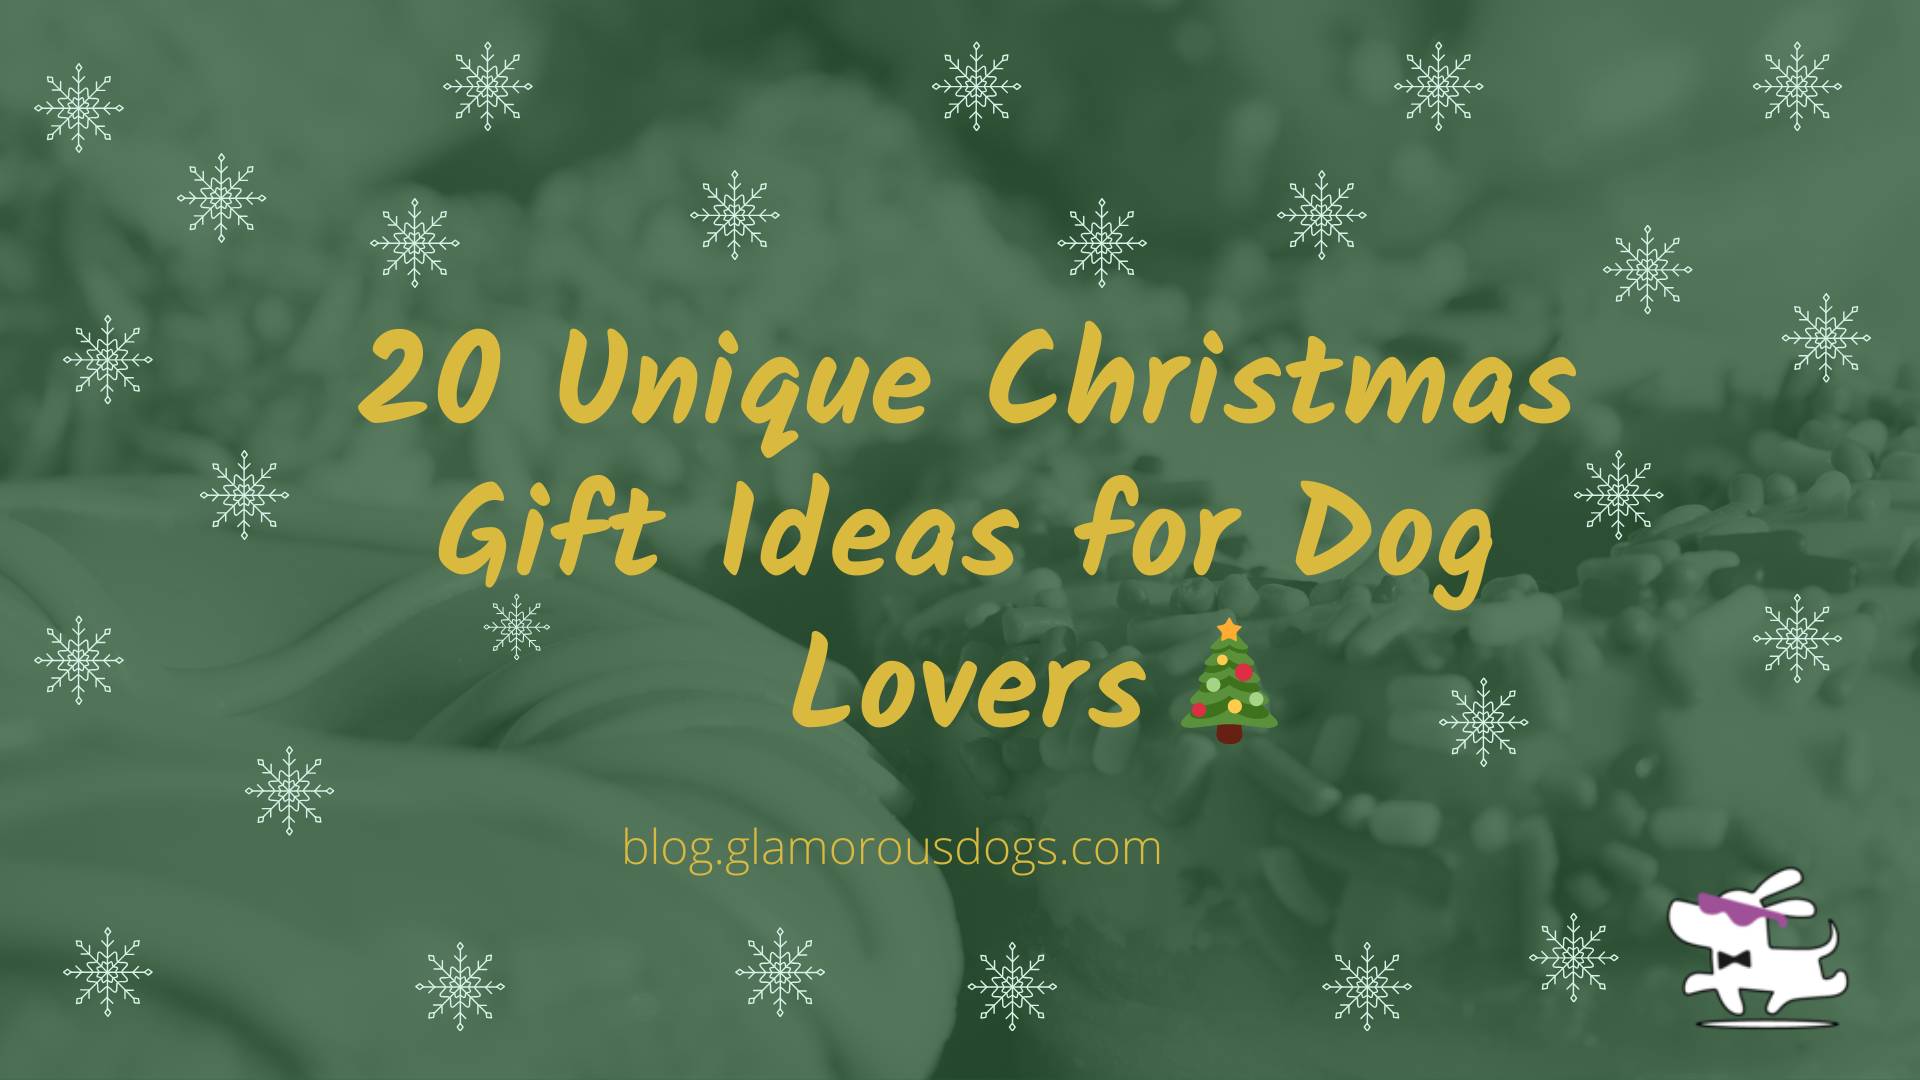 20 Unique Christmas Gift Ideas for Dog Lovers